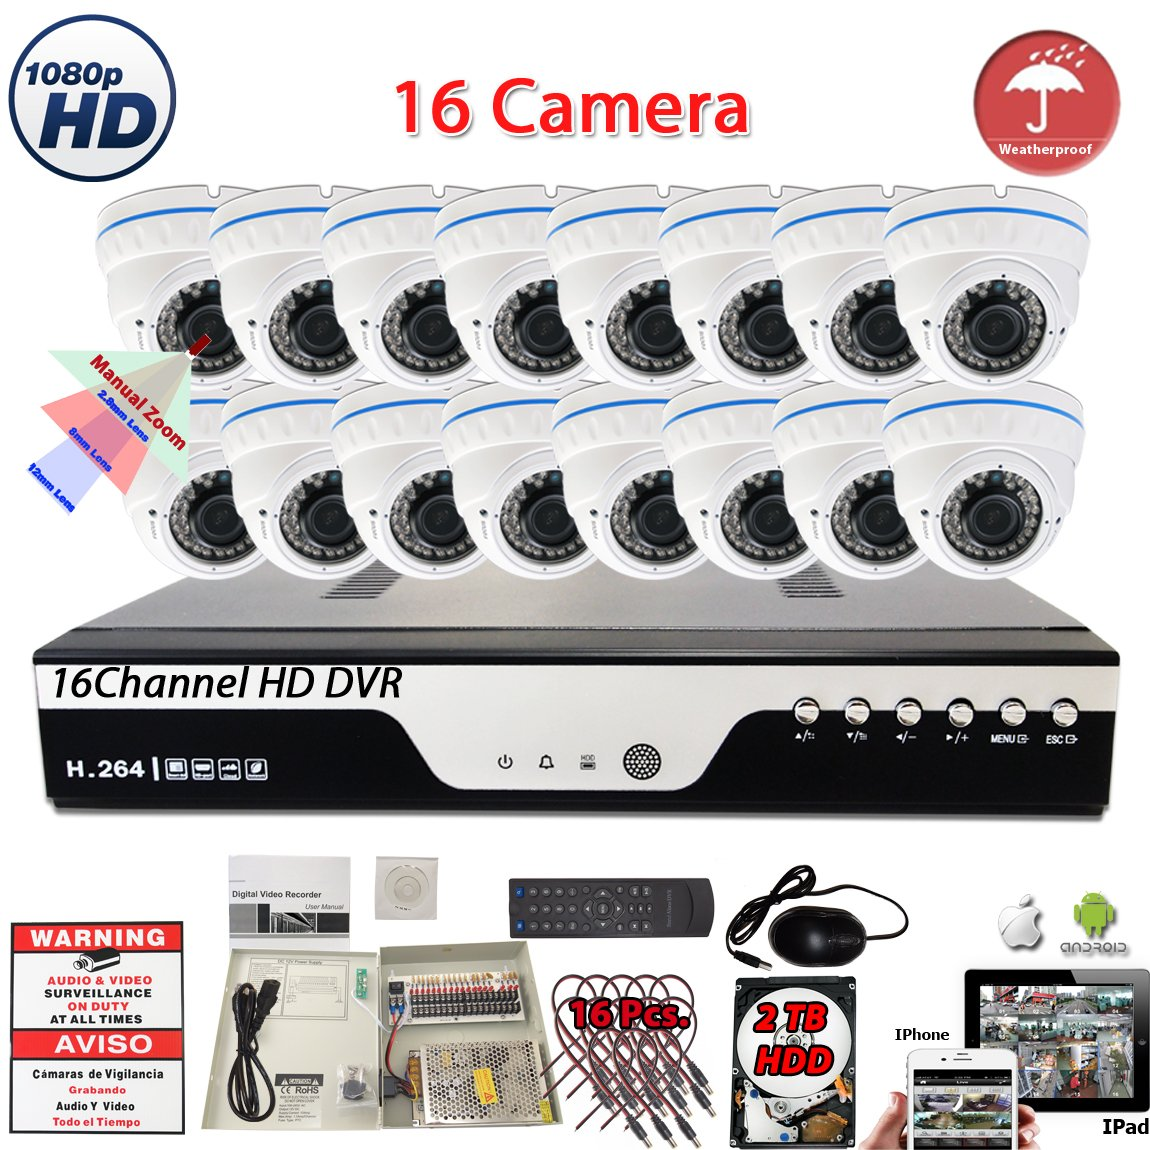 Amazon.com : Evertech 16 Channel HD DVR w/ 16 pcs 4in1 AHD TVI CVI ANALOG 1080P Varifocal Manual Zoom Dome HD CCTV Home Security Camera System Set w/ 2TB ...